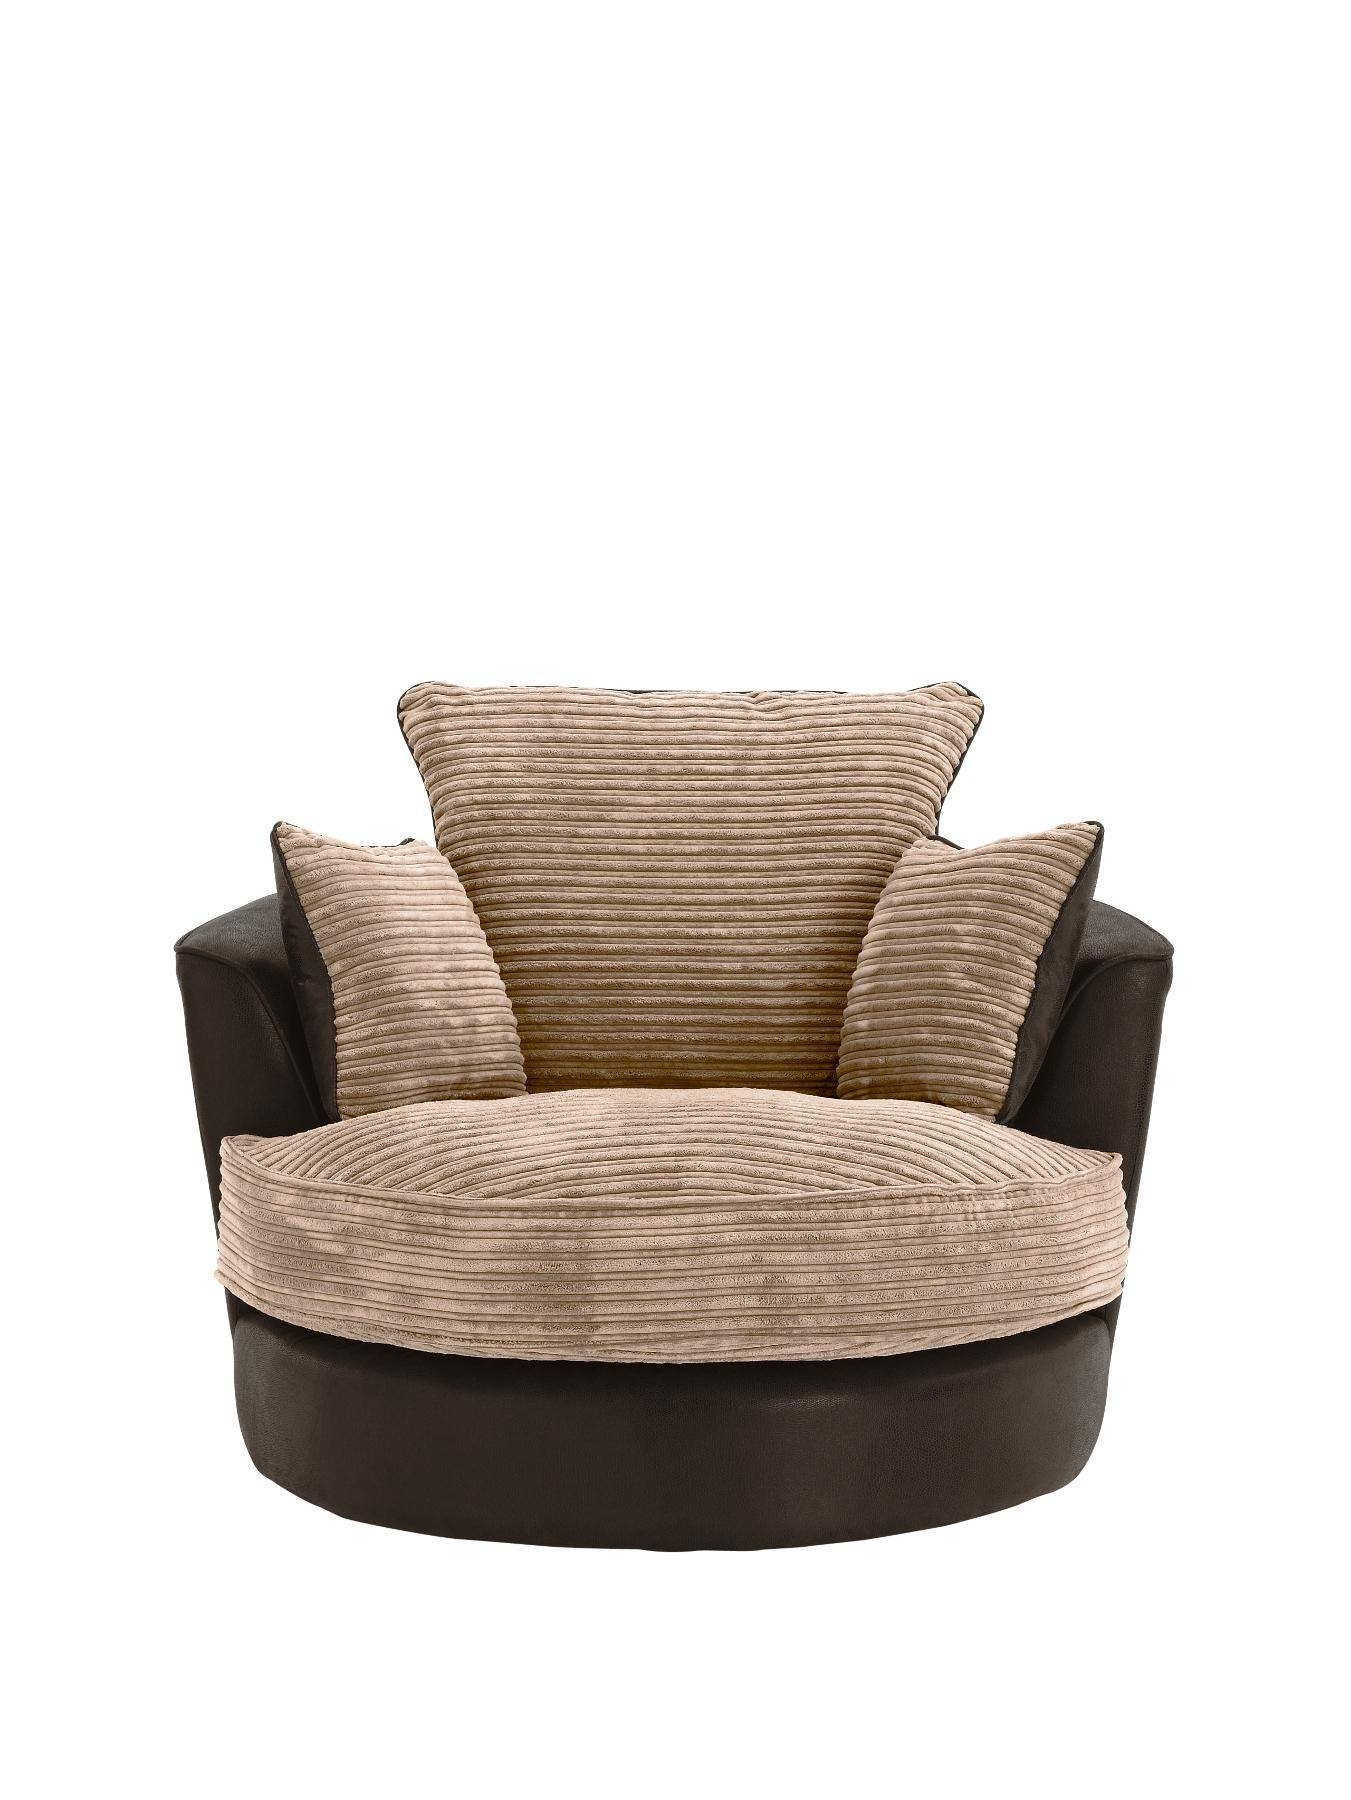 28+ [ Swivel Cuddle Chair ] | Cuddle Circle Fabric Swivel Chair regarding Cuddler Swivel Sofa Chairs (Image 1 of 30)